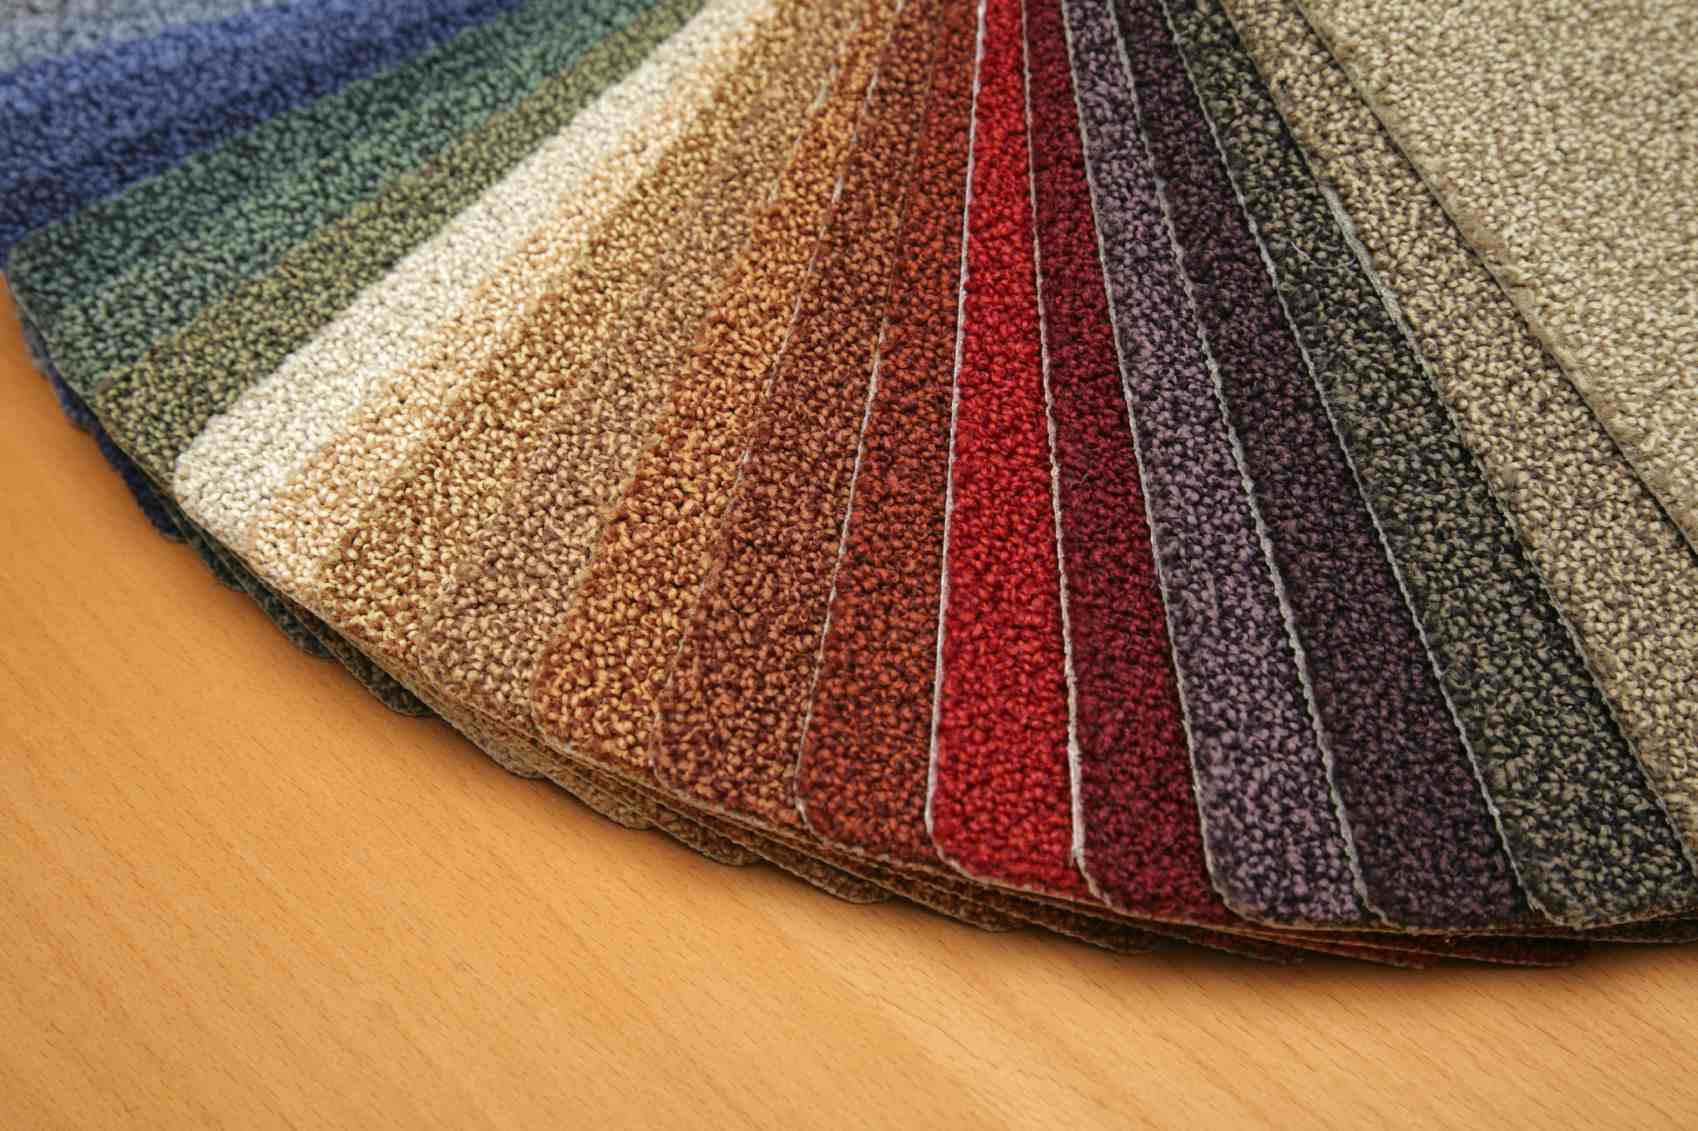 Recycled Carpeting Another Way To Support Plastic Recycling